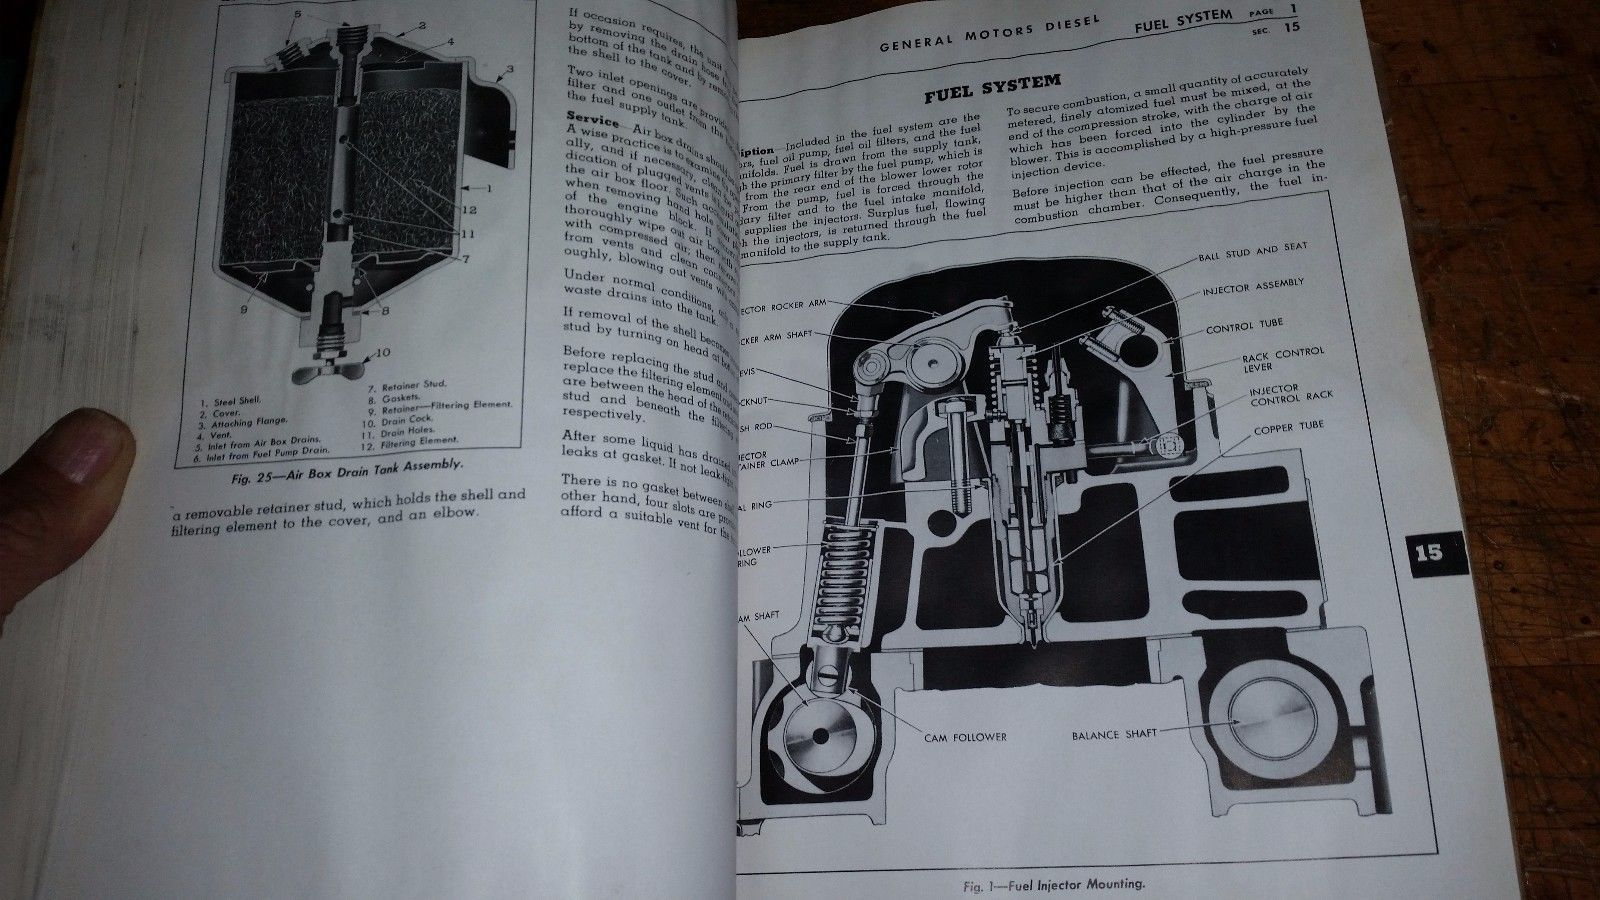 GM DETROIT DIESEL SERIES 71 MAINTENANCE MANUAL FOR 3,4,AND 6 CYL UNITS